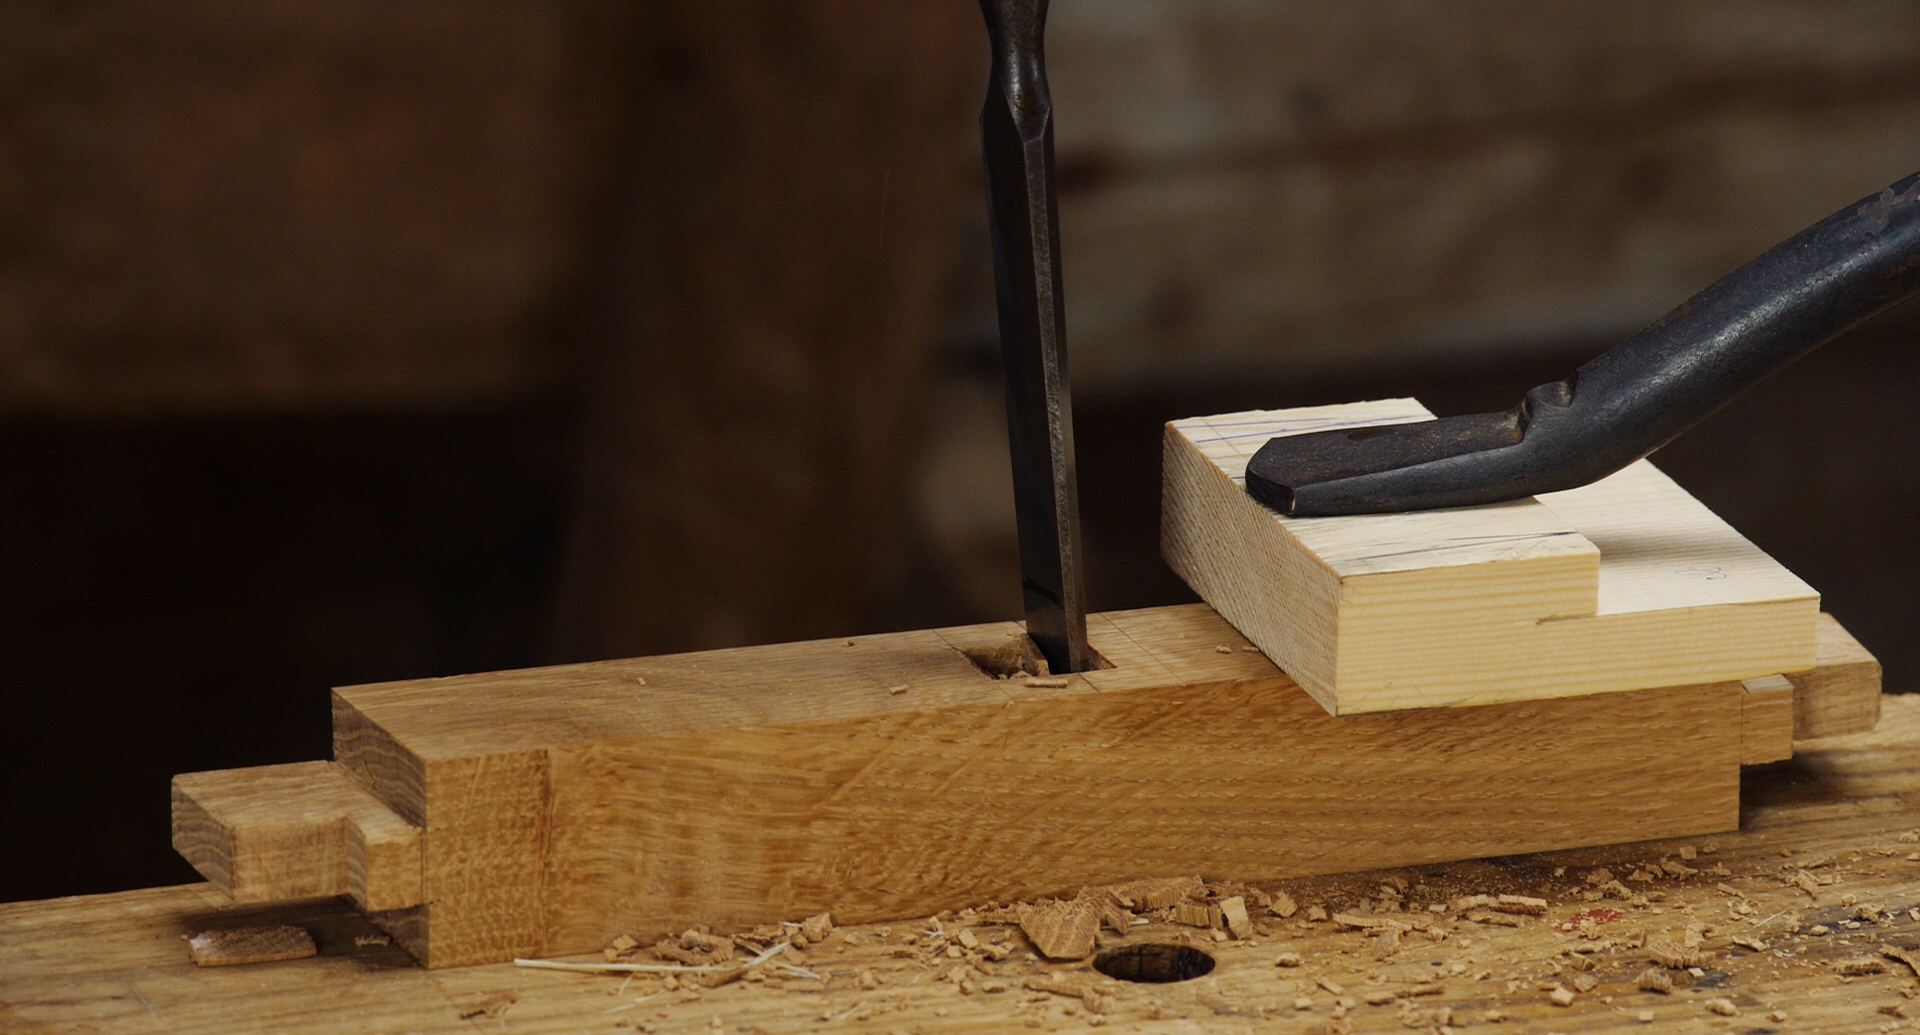 clamping on the workbench top using a holdfast